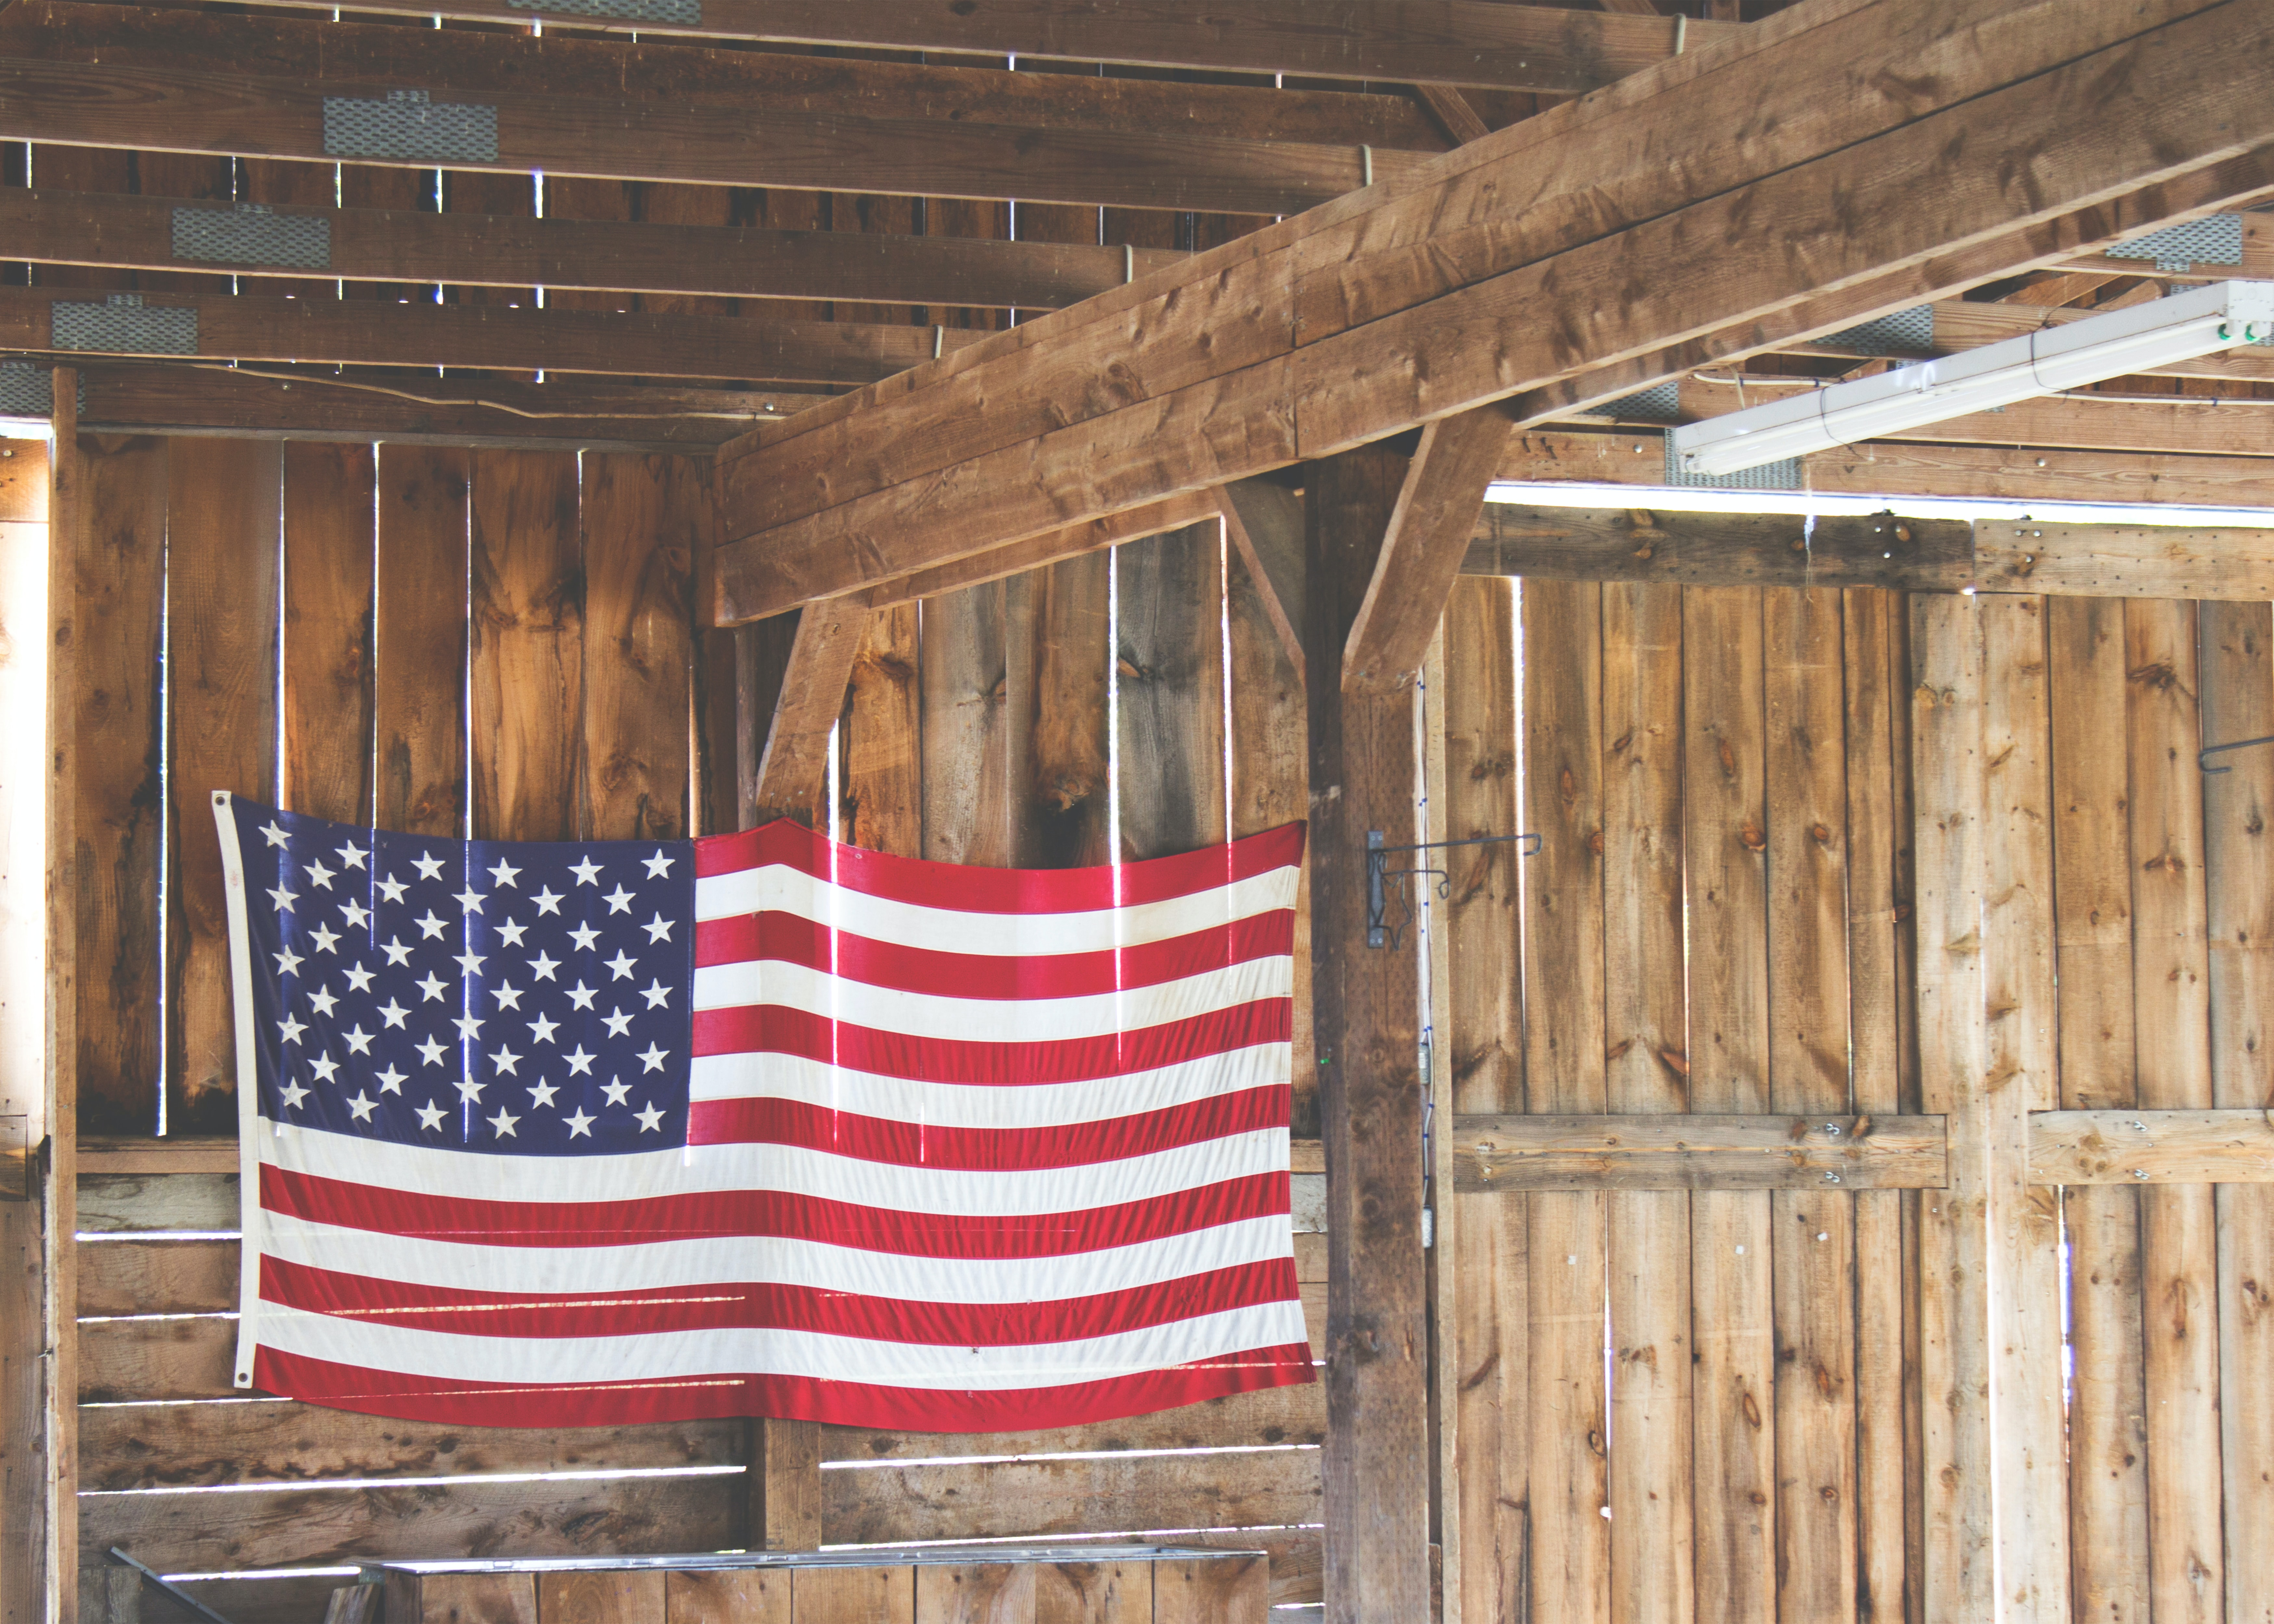 An American flag hanging in a wooden barn